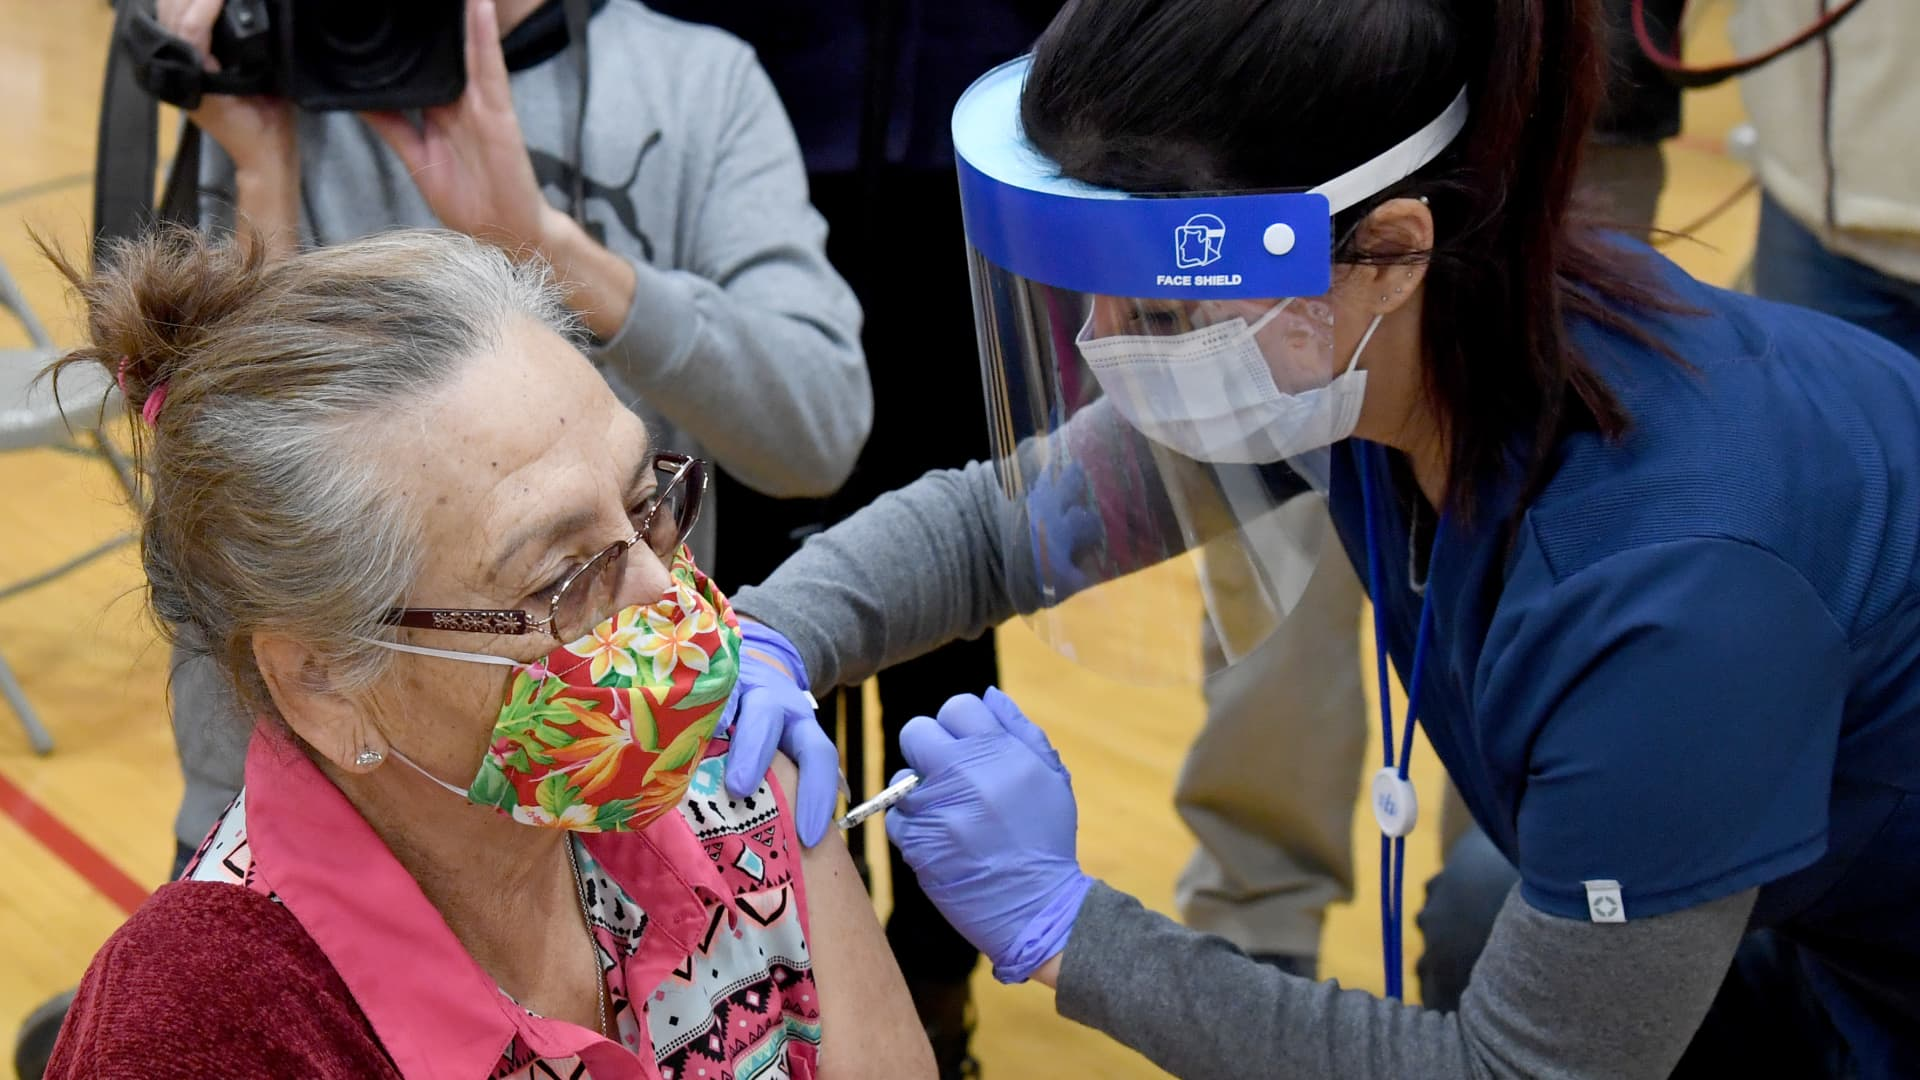 Flor Rodriguez (L), 72, of Nevada, receives a Pfizer-BioNTech COVID-19 vaccination from Southern Nevada Health District nurse Daliah Rubio at Jerome Mack Middle School on January 29, 2021 in Las Vegas, Nevada.